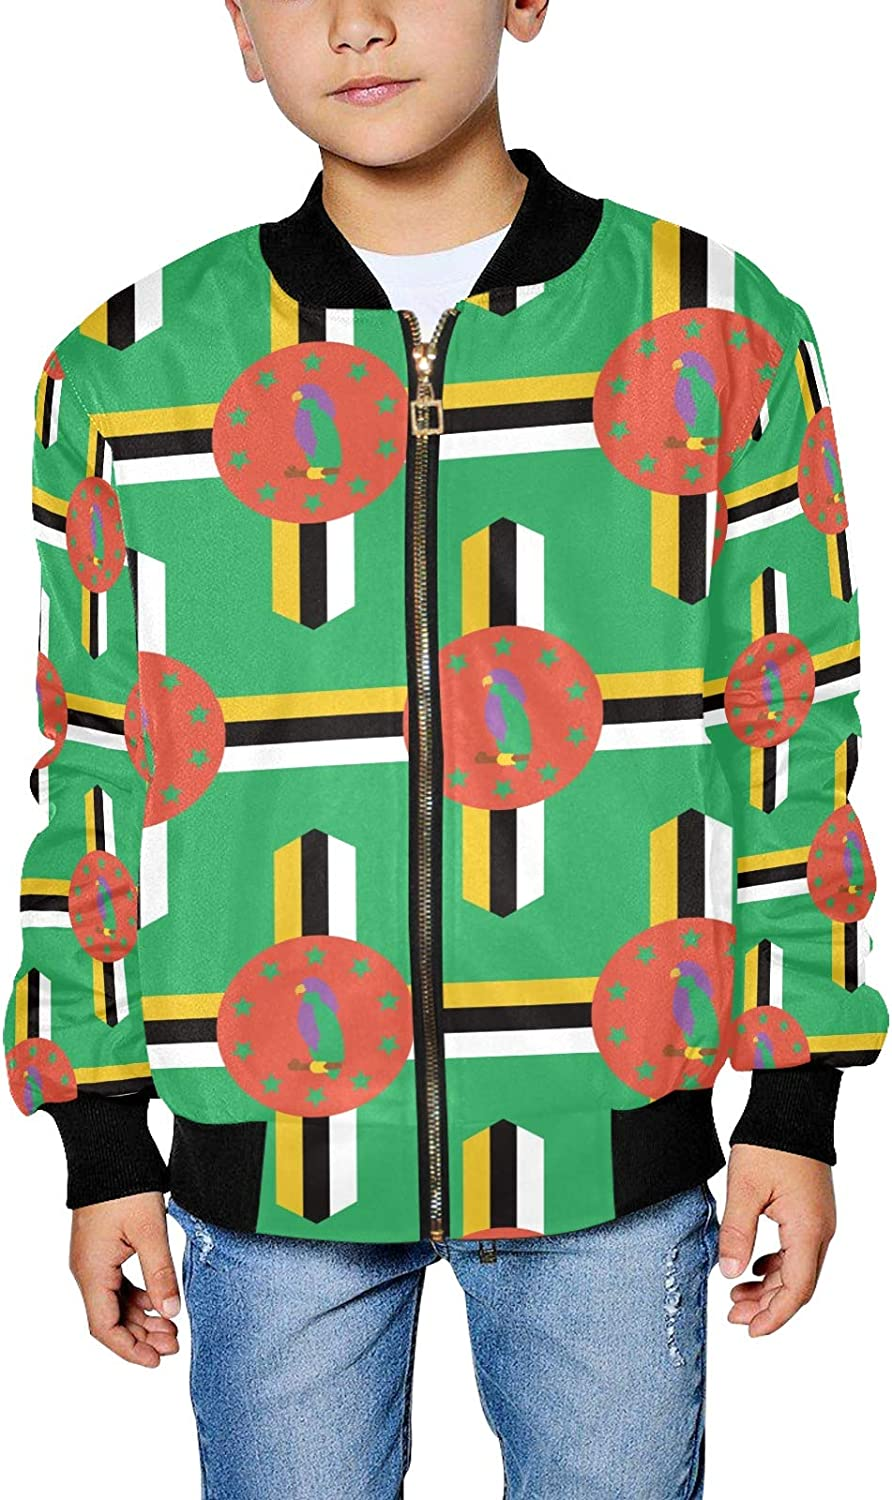 Dominica Flag Boy's Fees 70% OFF Outlet free Bomber Girl's Jacket